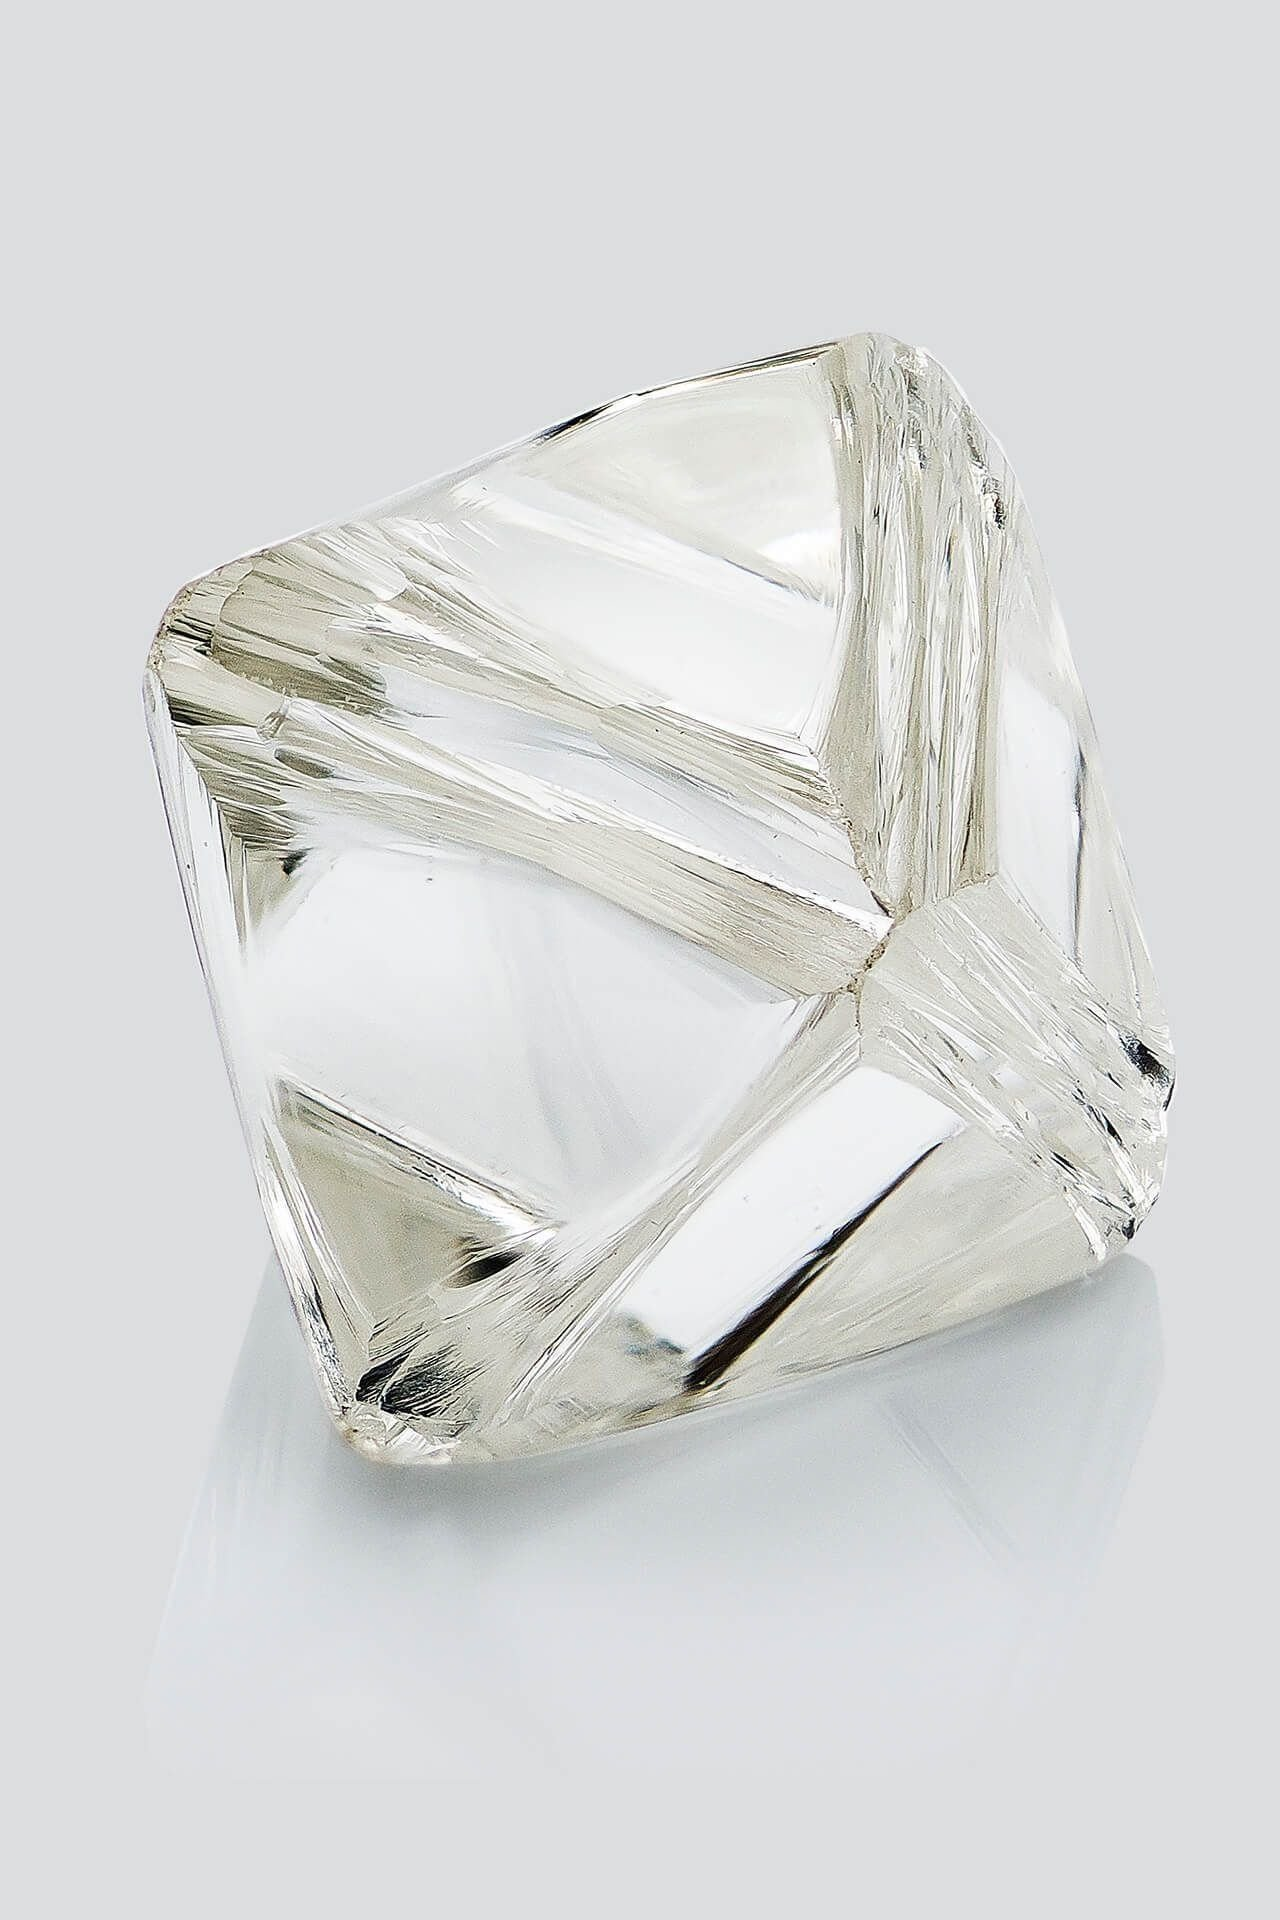 The diamond is only eternal if it is protected